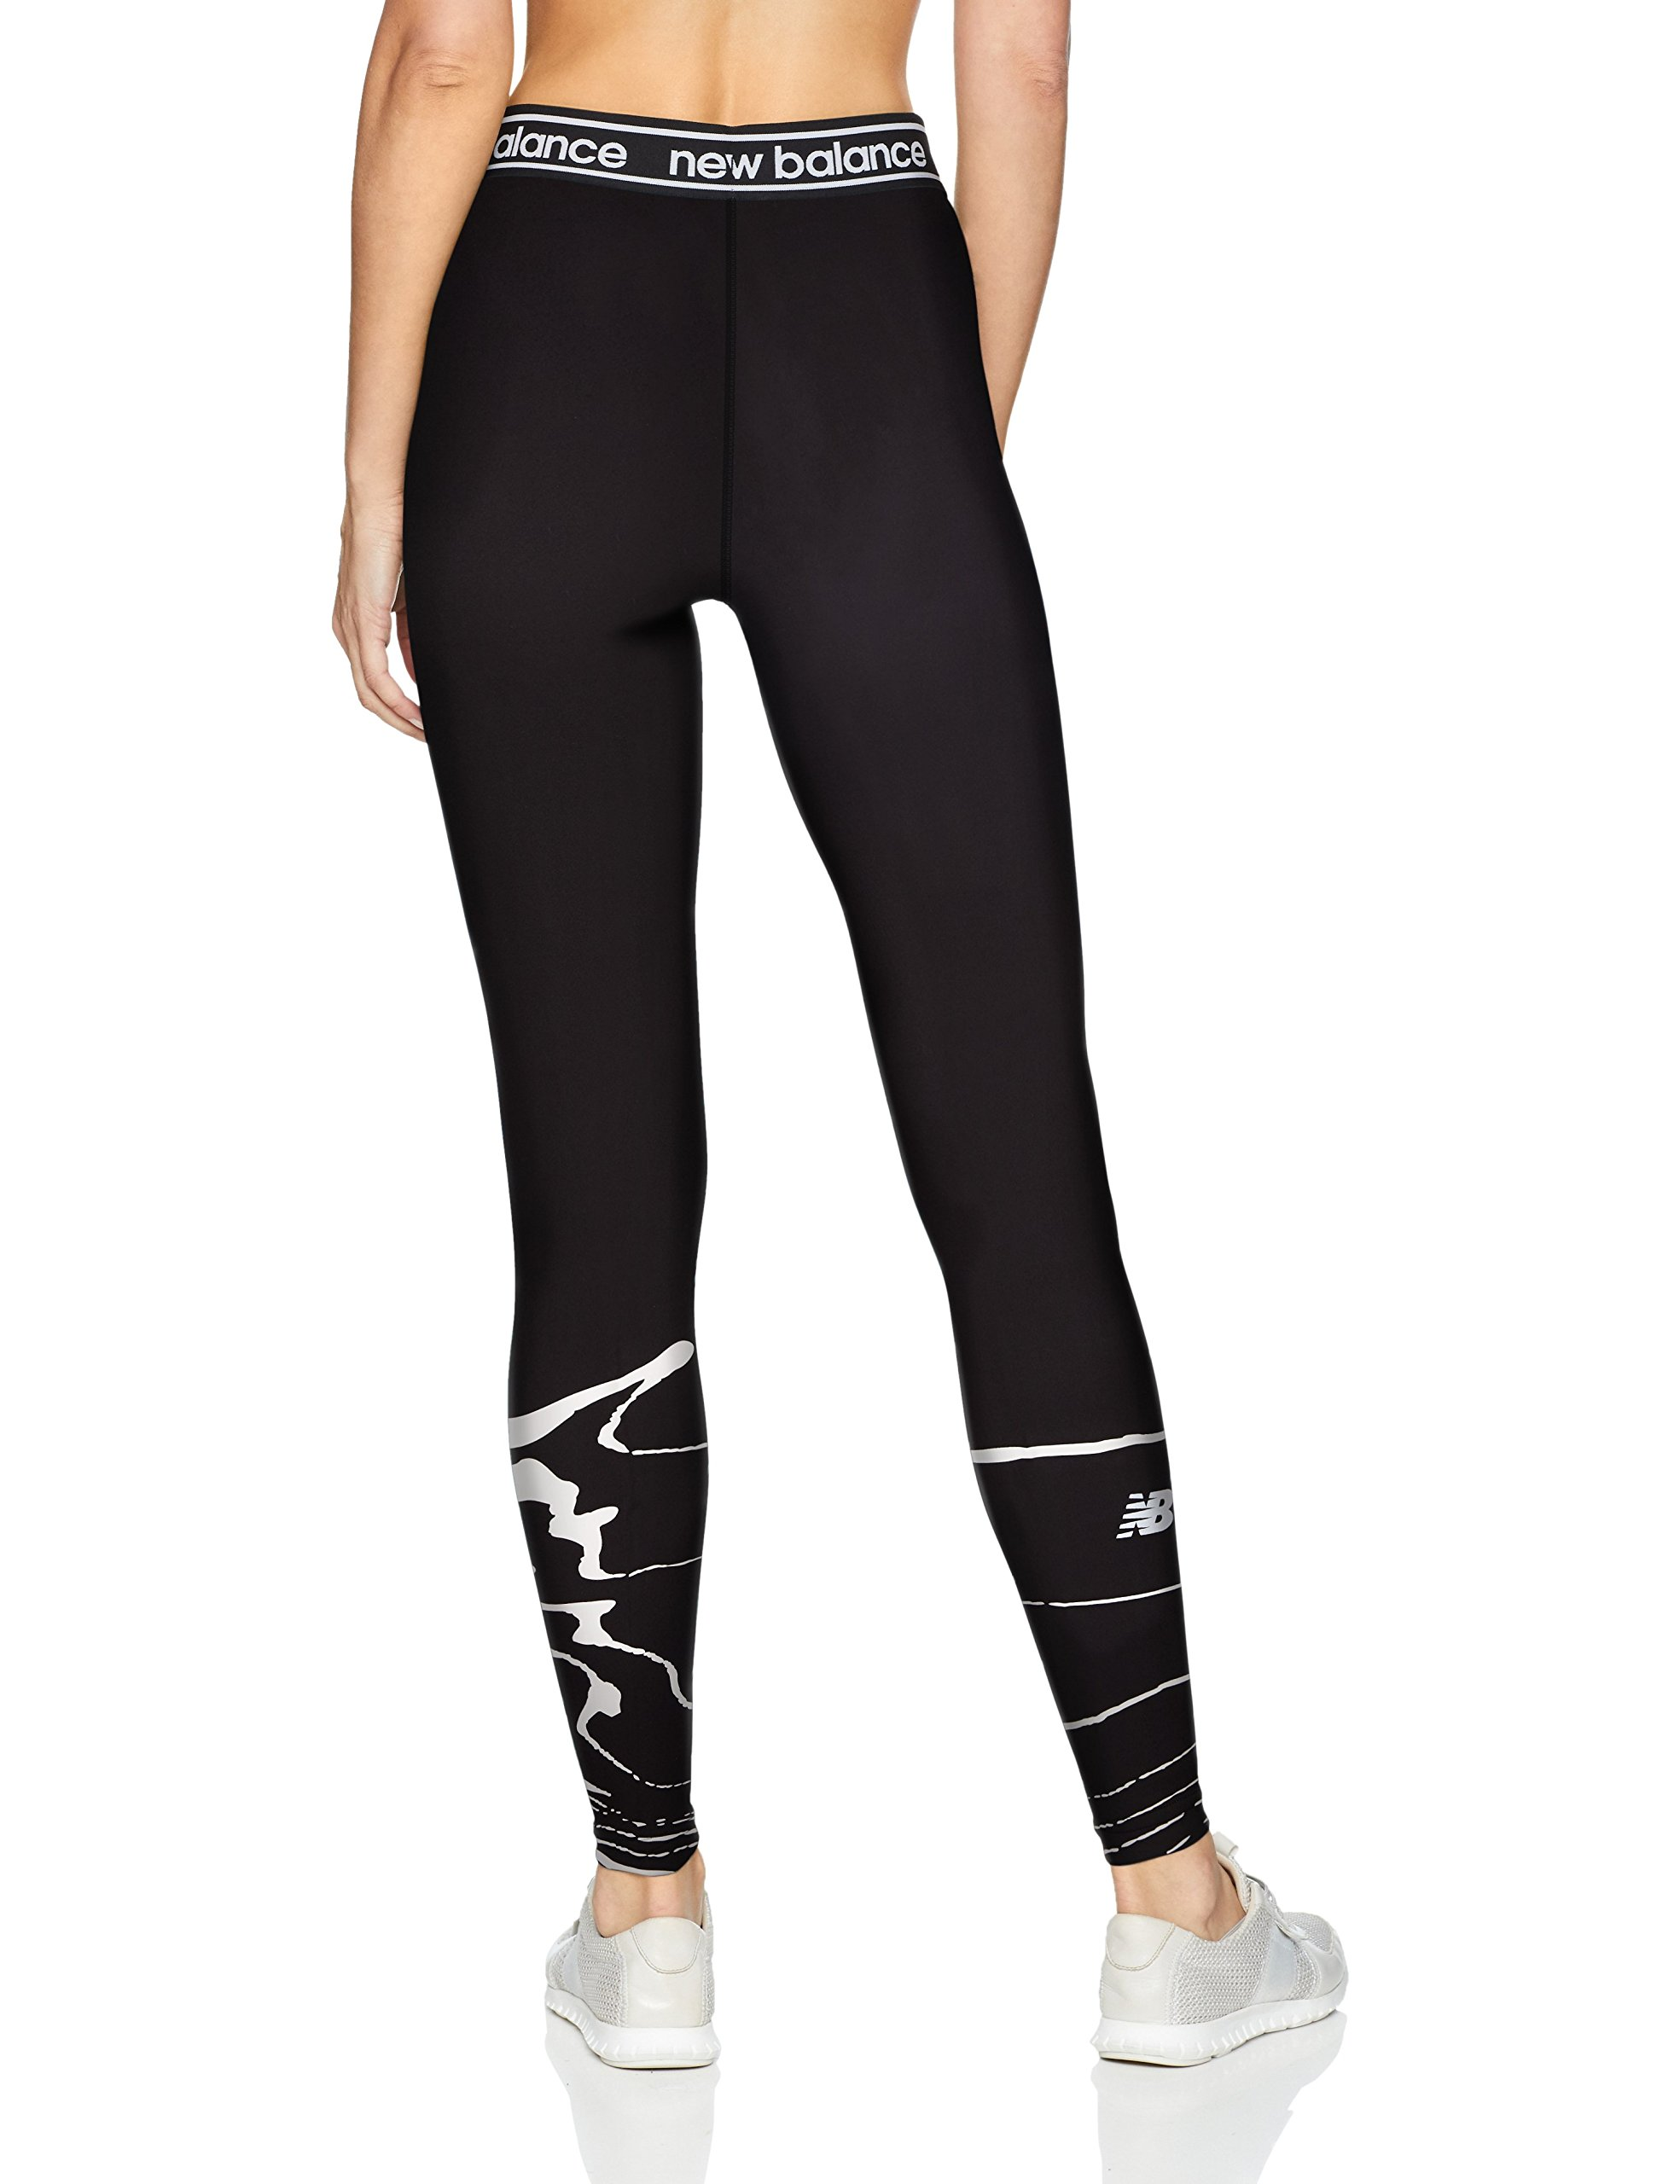 714DovQGLaL - New Balance Women's Printed Accelerate Tight